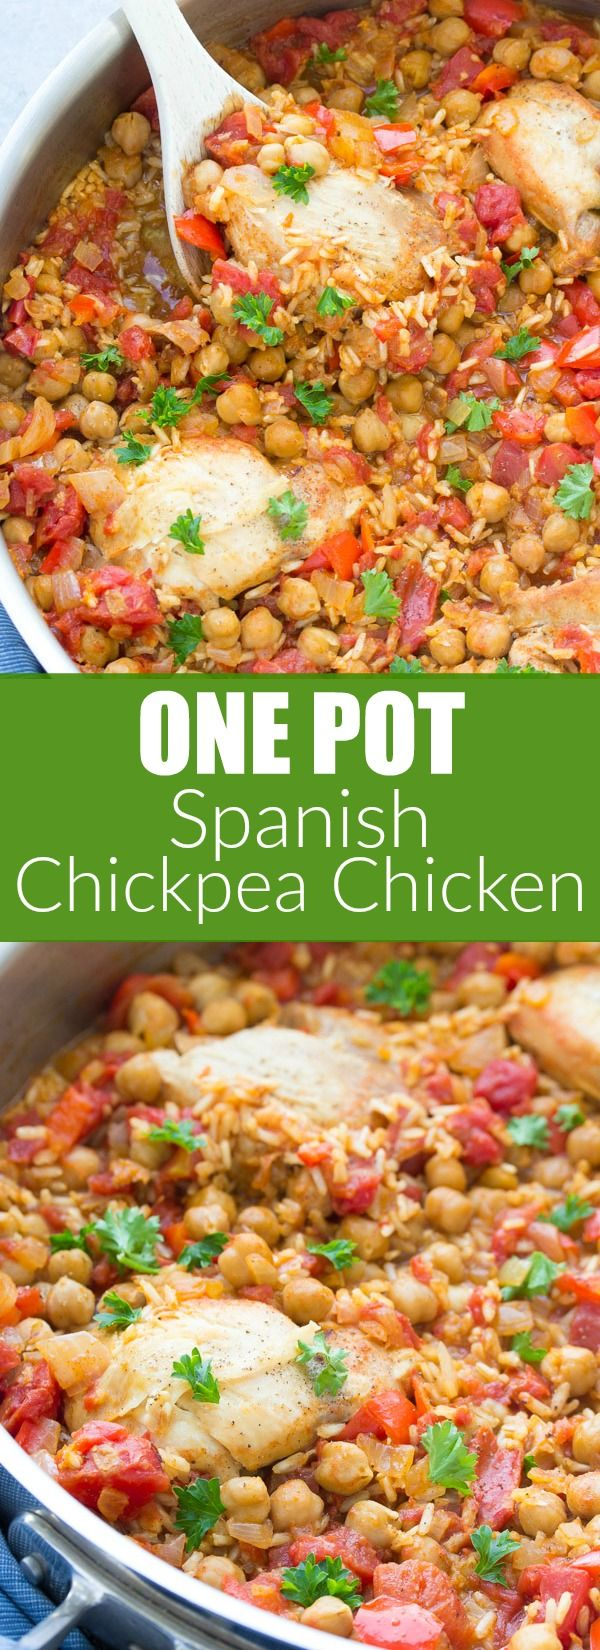 This One Pot Spanish Chickpea Chicken is an easy dinner recipe that the whole family will love! With brown rice, tomatoes, and vegetables, all cooked in one pan! #pulsepledge #sponsored | www.kristineskitchenblog.com